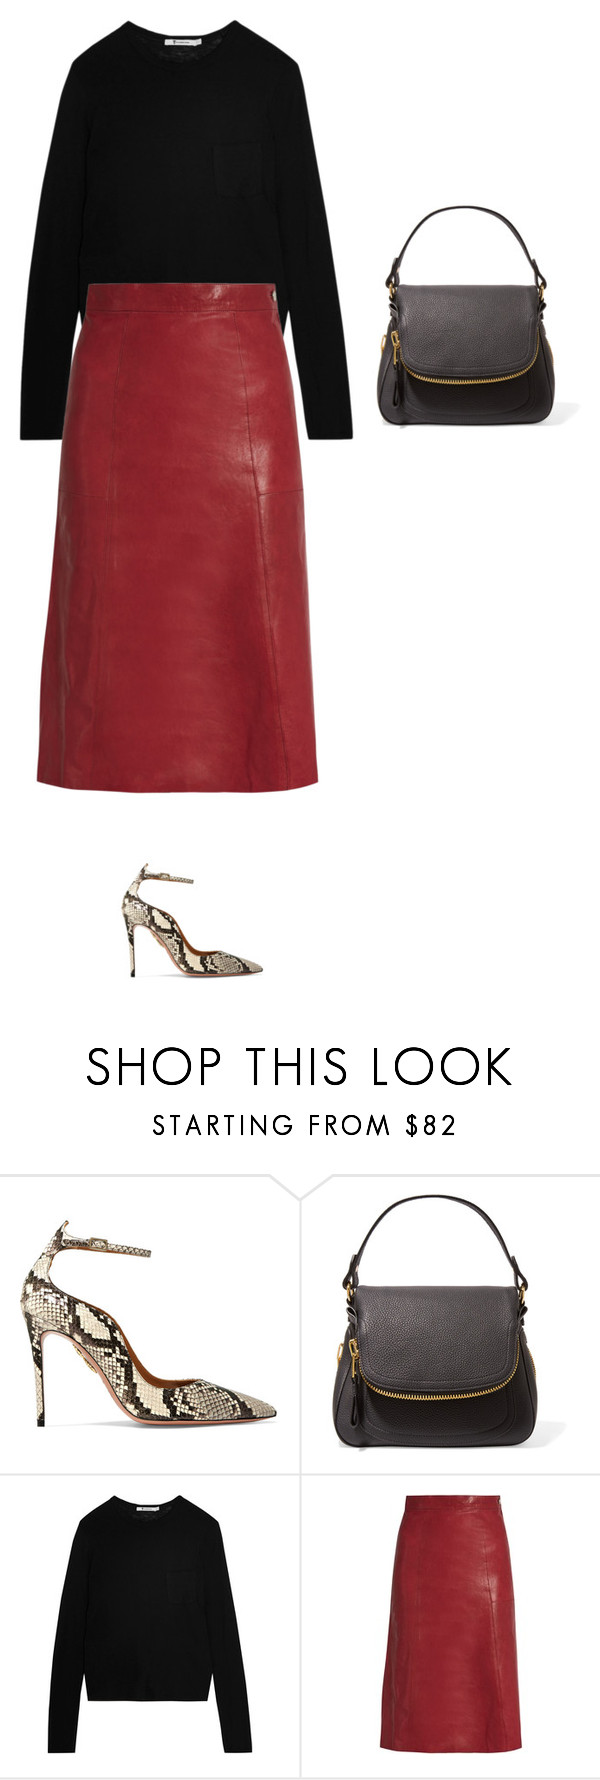 """Untitled #968"" by amyjonez on Polyvore featuring Aquazzura, Tom Ford, T By Alexander Wang and Vanessa Bruno"